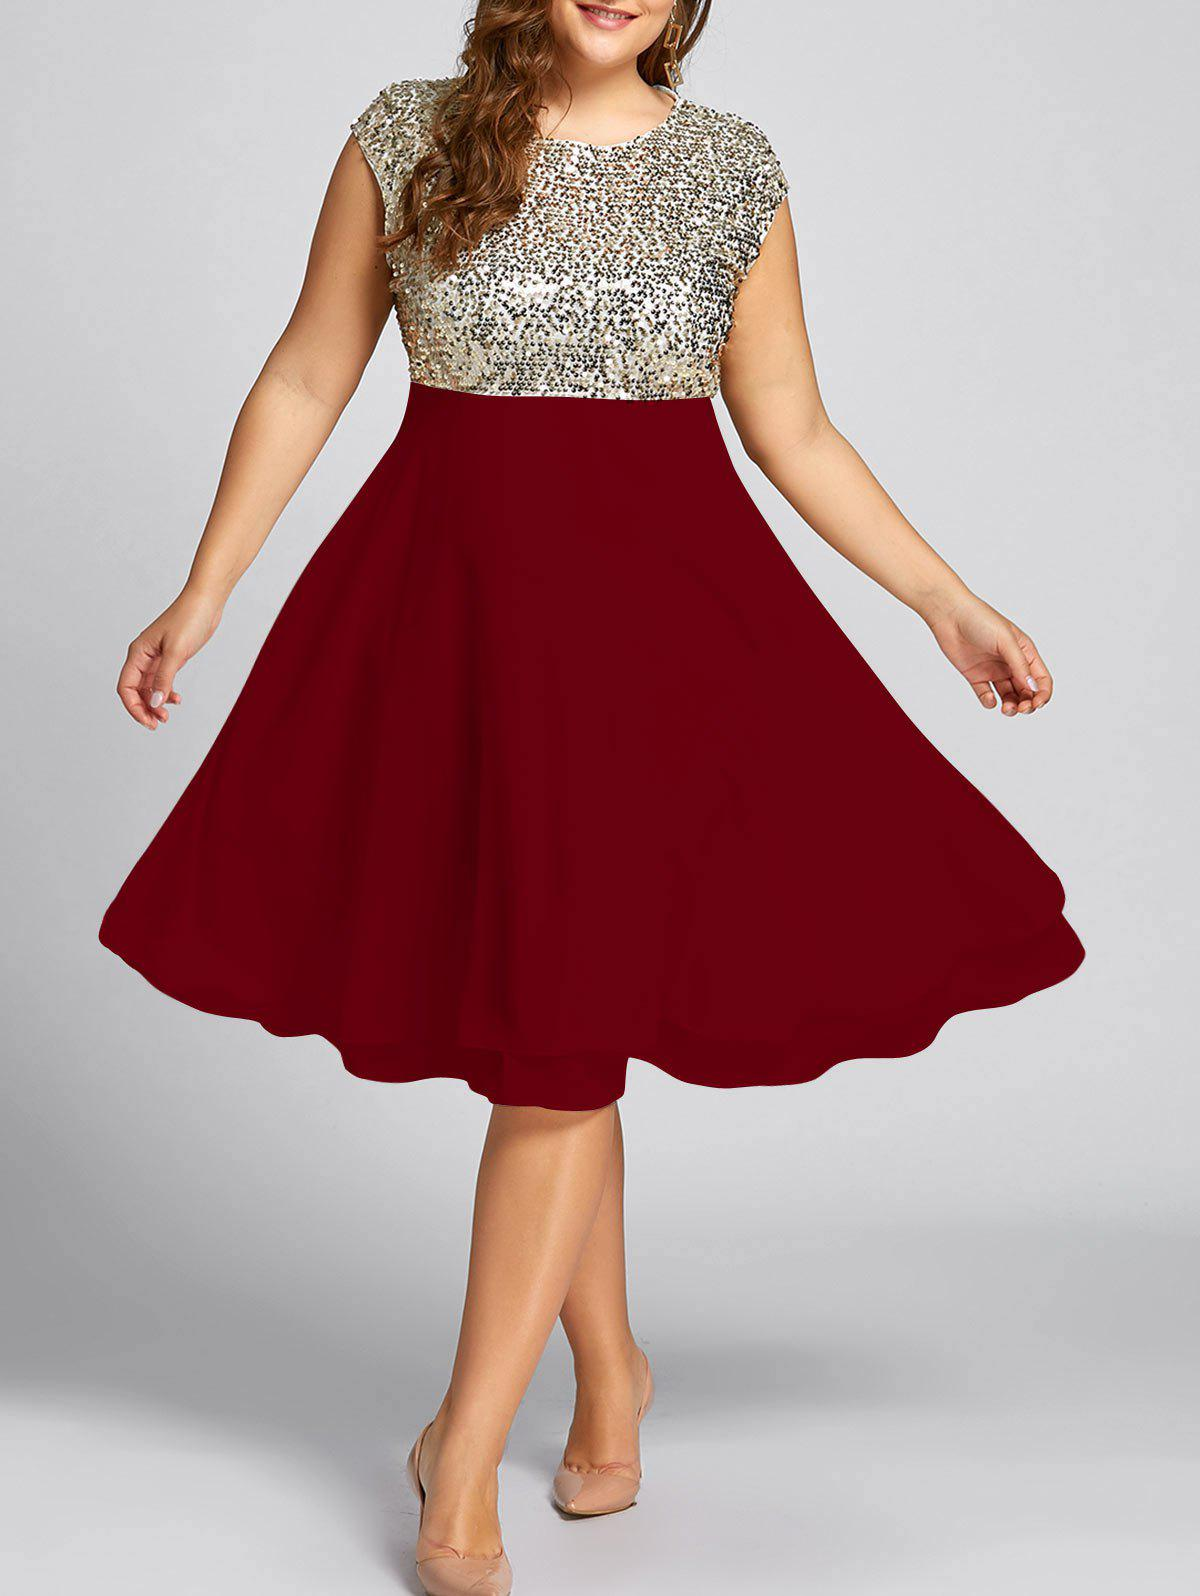 48% OFF   2019 Flounce Plus Size Sparkly Sequin Cocktail Dress ... 99085ad5b8c3